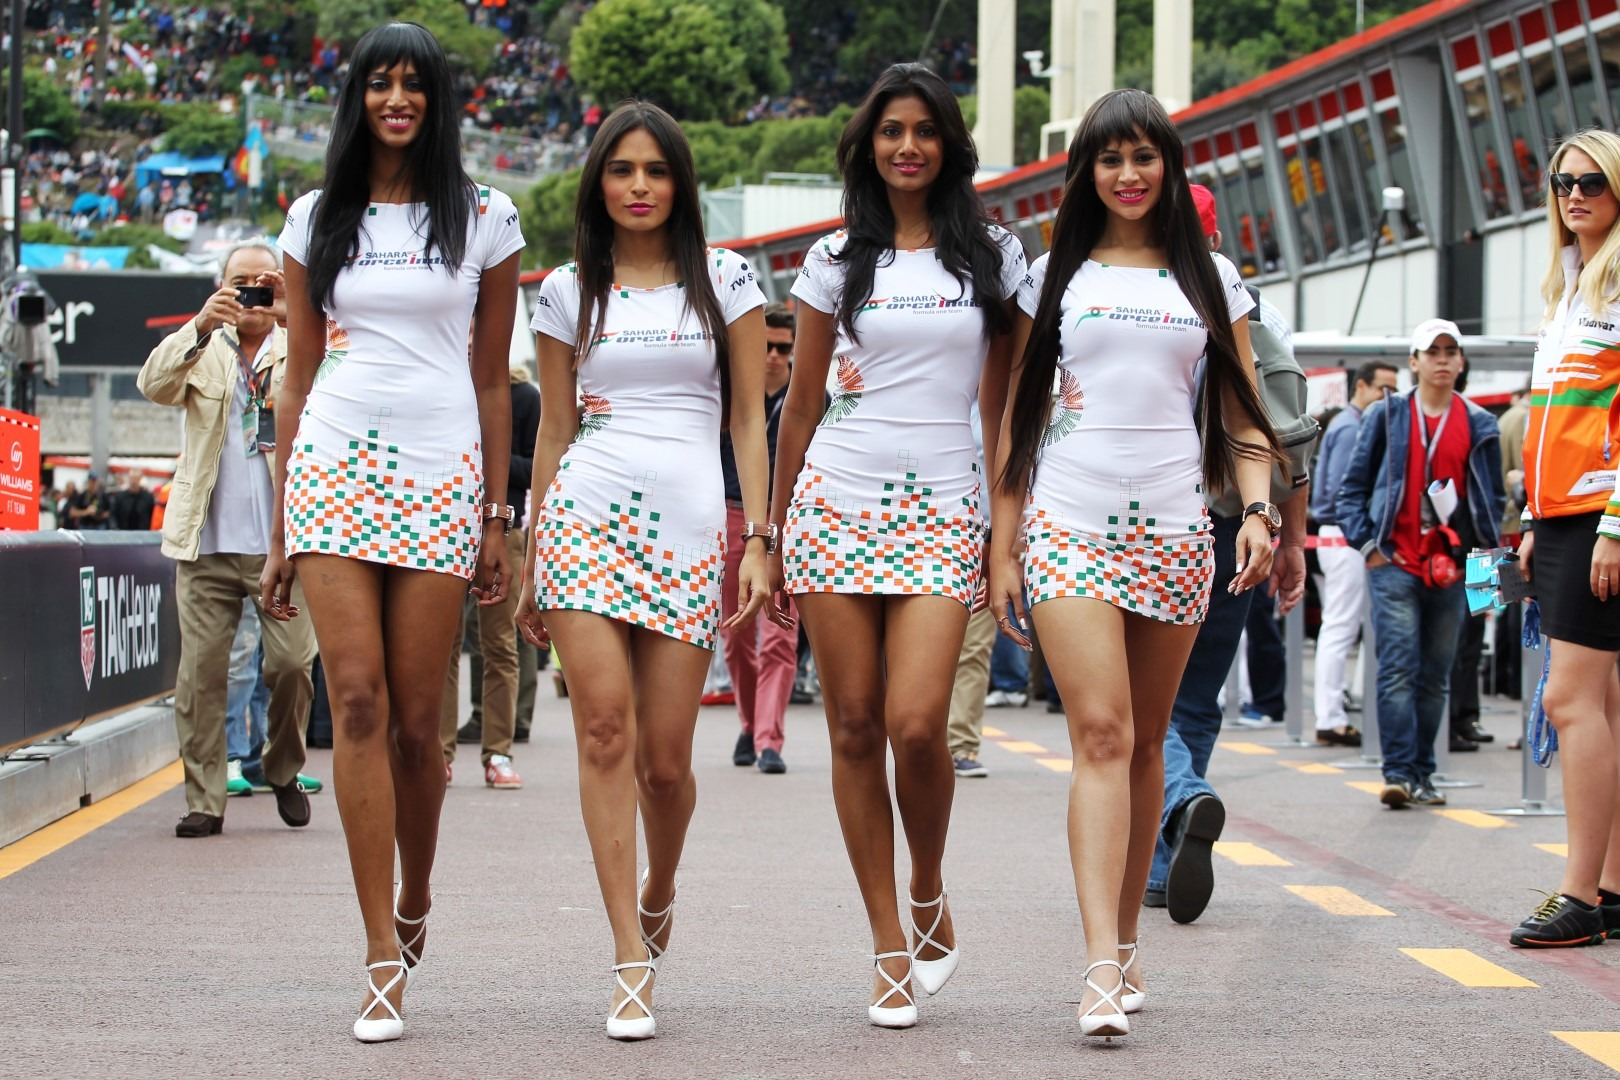 F1 Grid Girls Speak Out Against PC Gone Mad | Total Pro